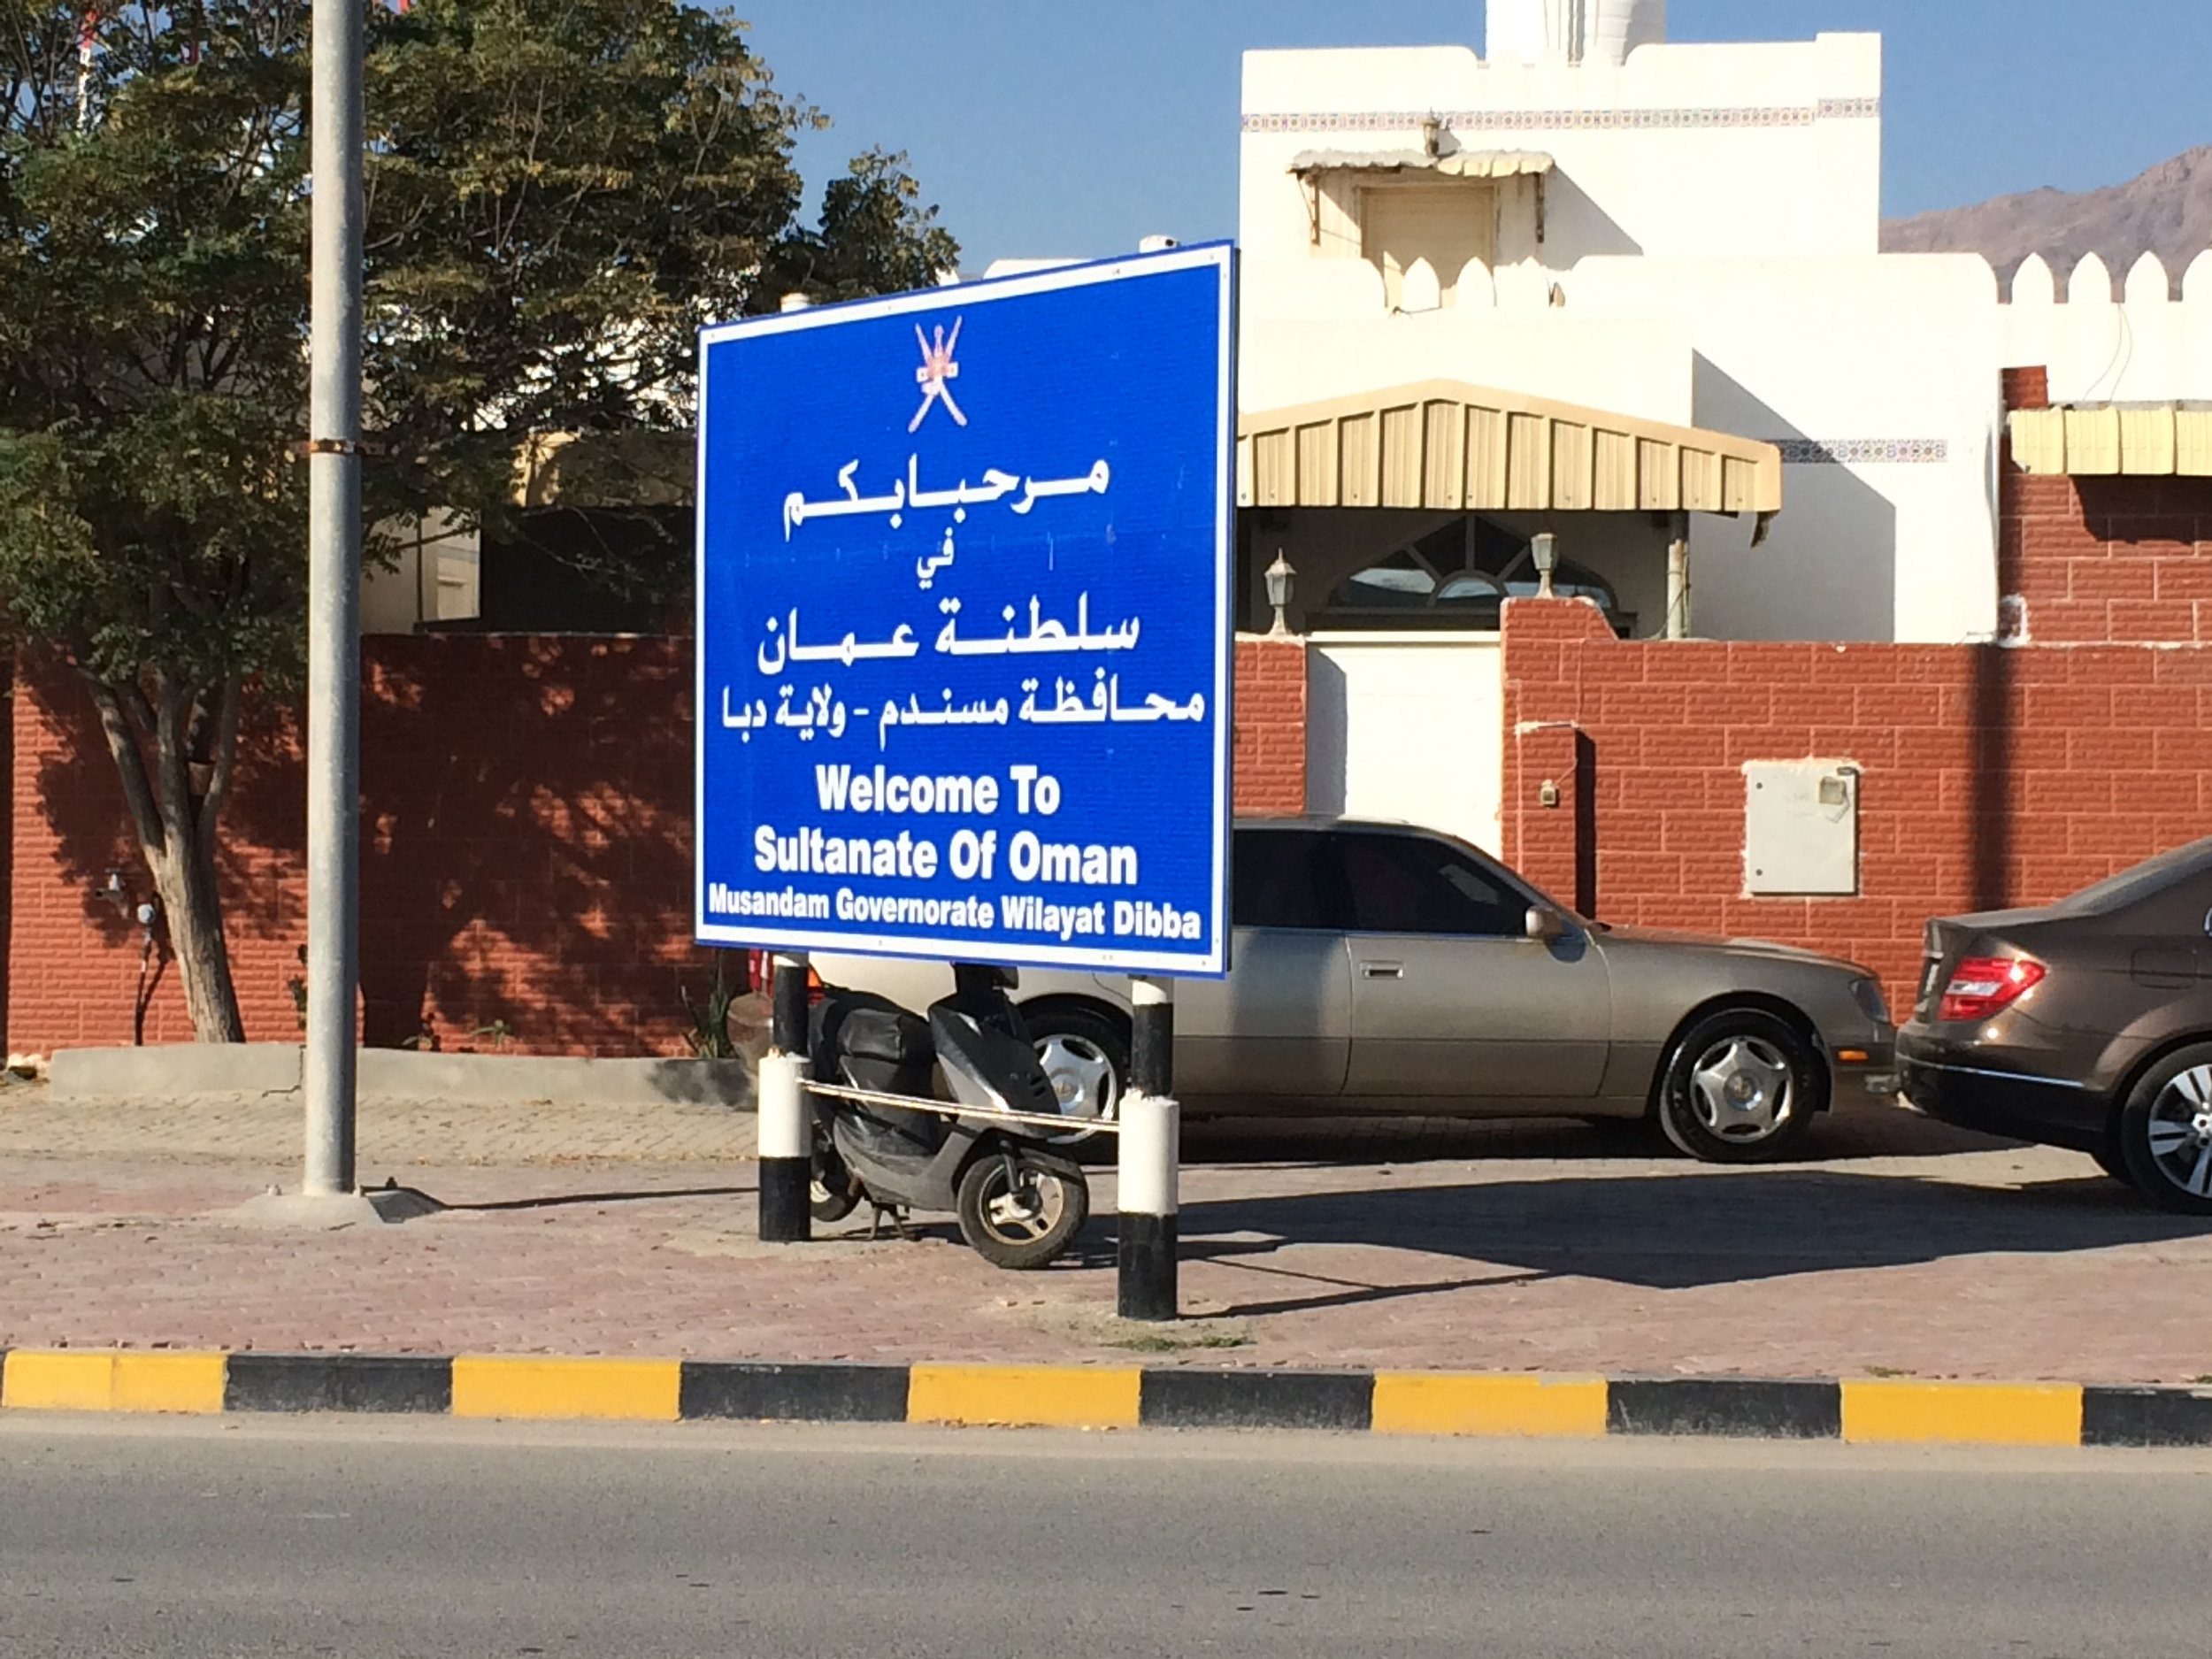 Crossing the border into the Sultanate of Oman from  Fujairah, UAE  was an experience I'd never forget.